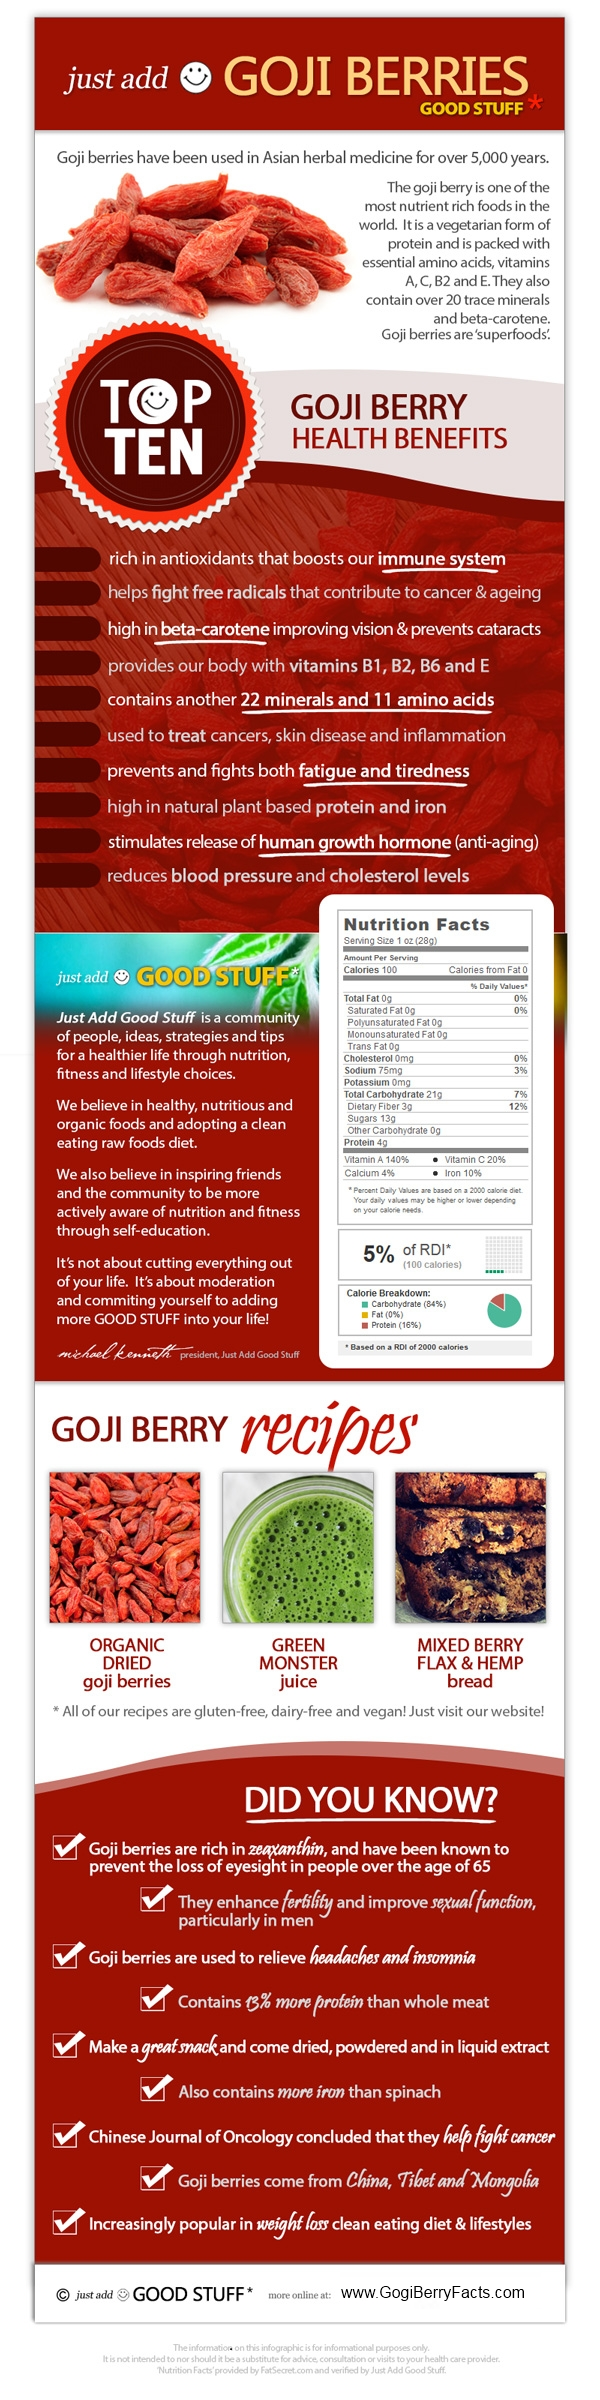 The Unlimited Health Benefits Of Goji Berries Infographic